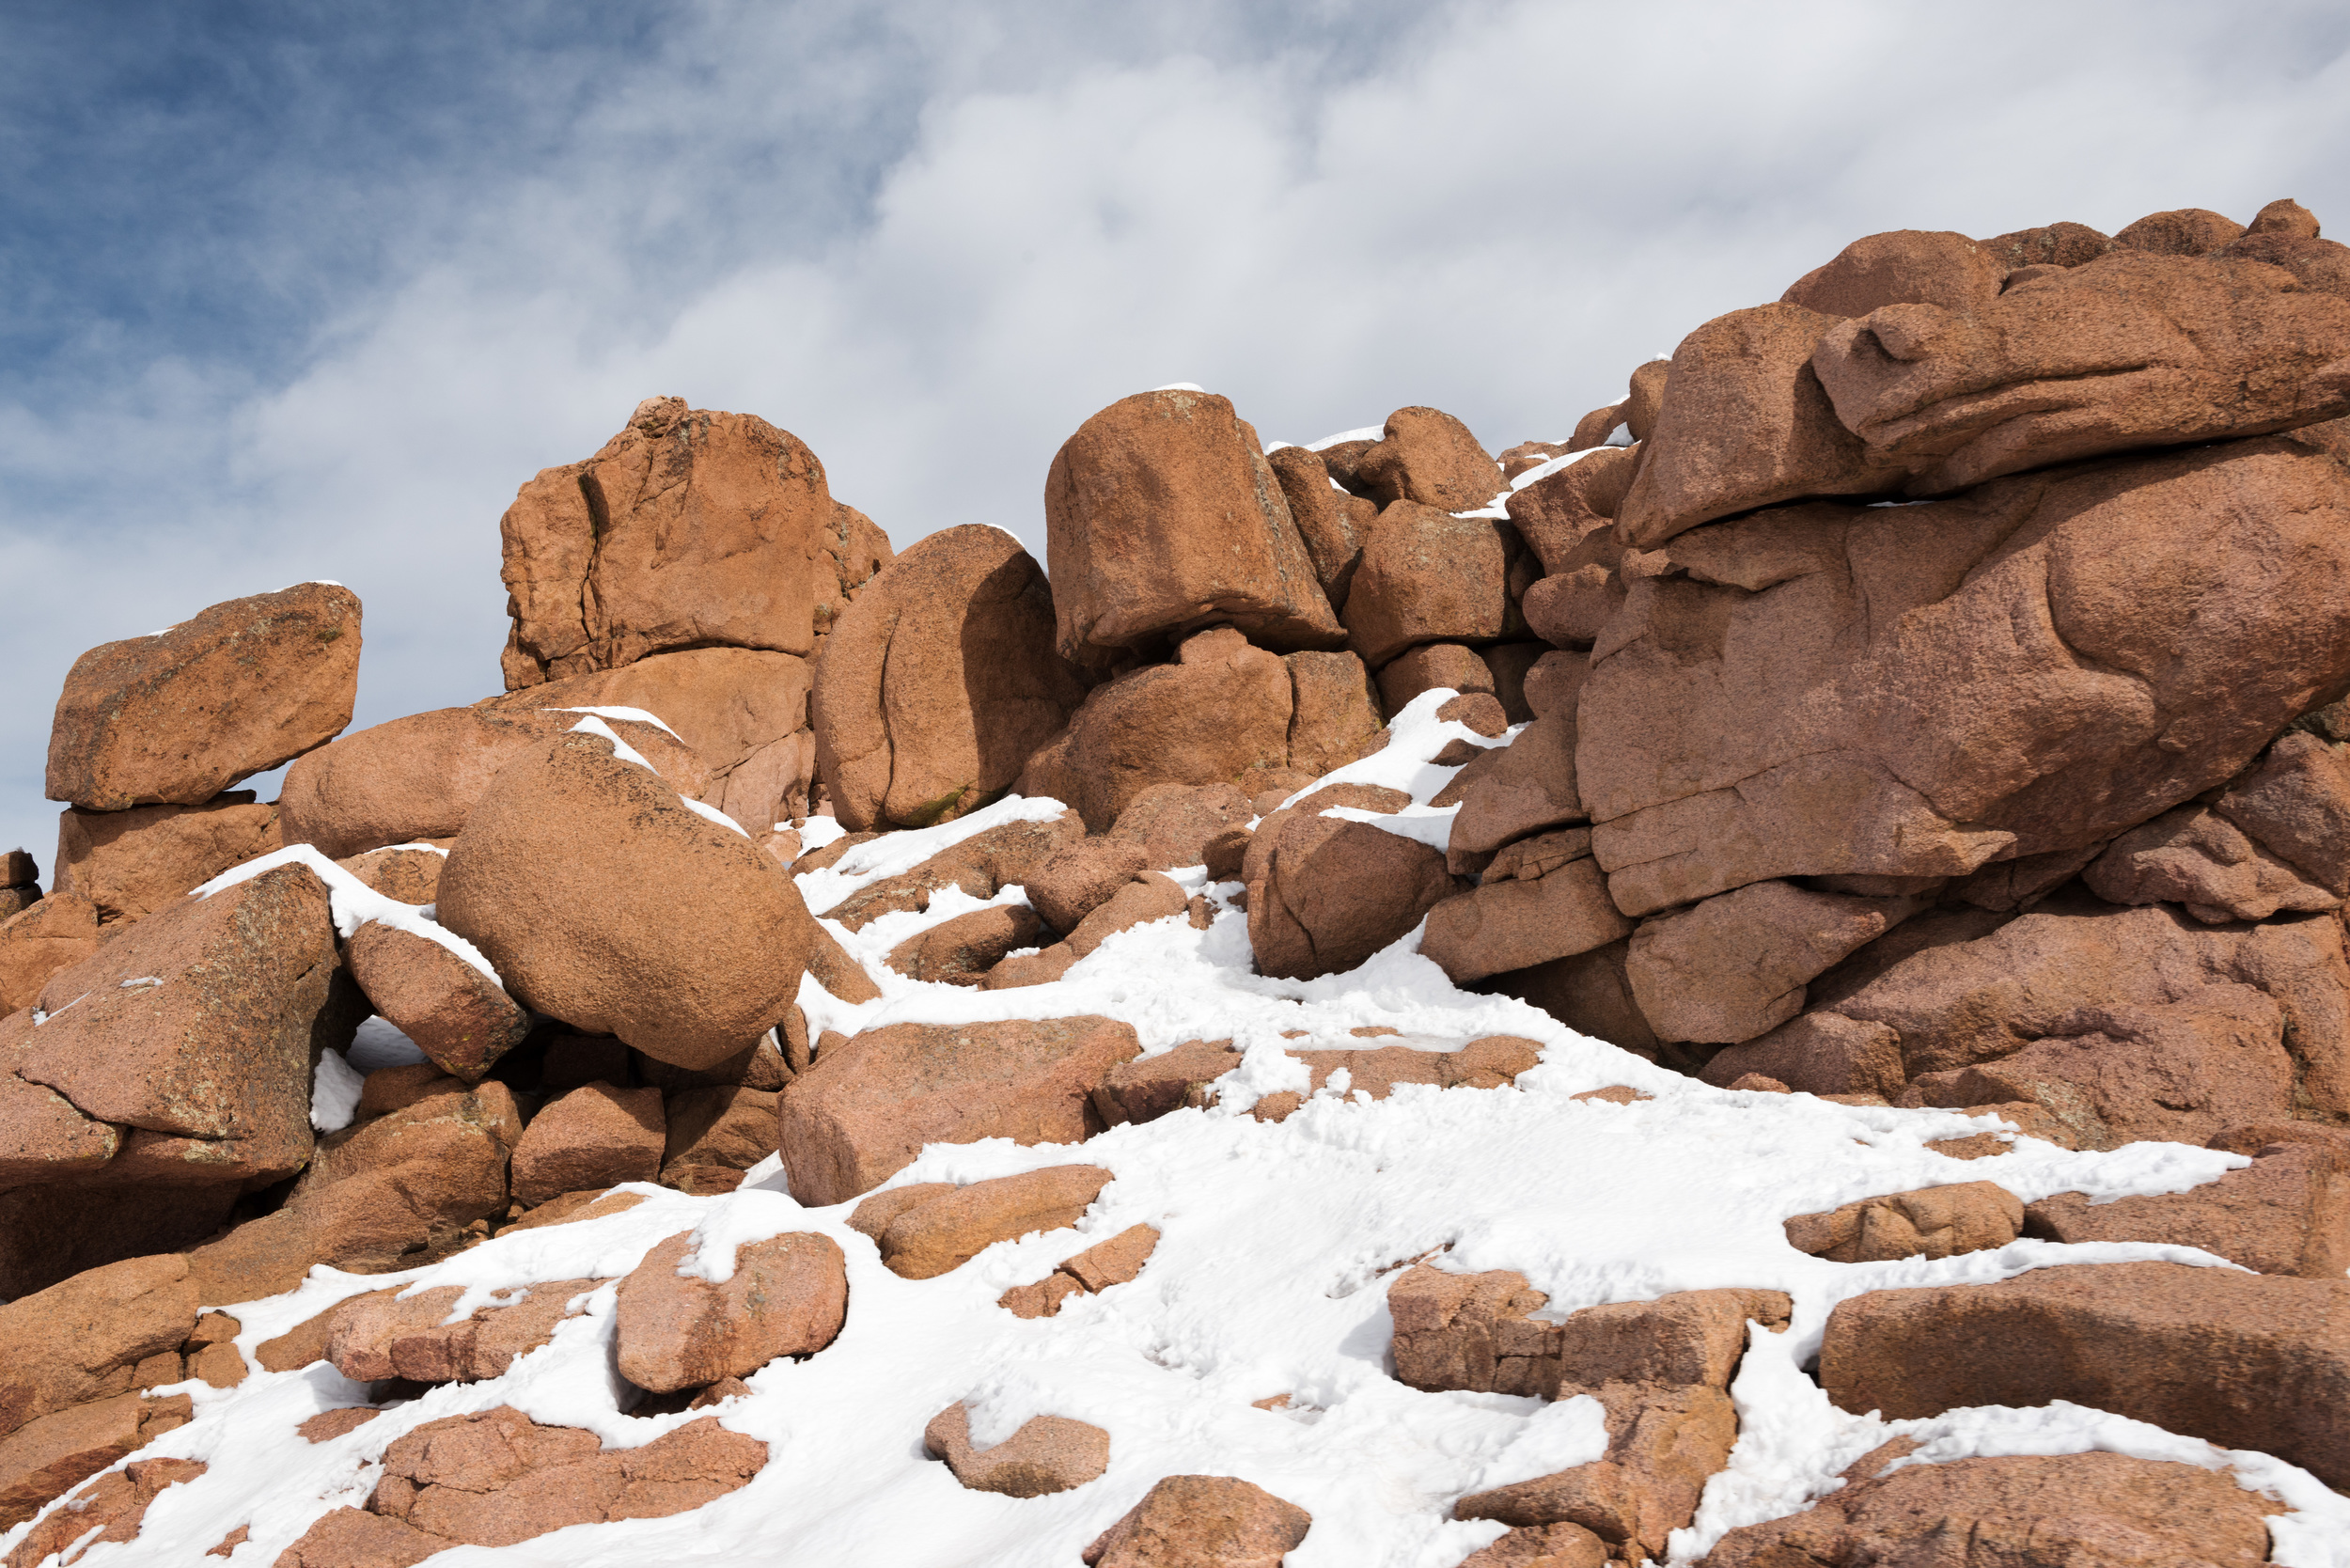 Pikes-Peak-Colorado-11